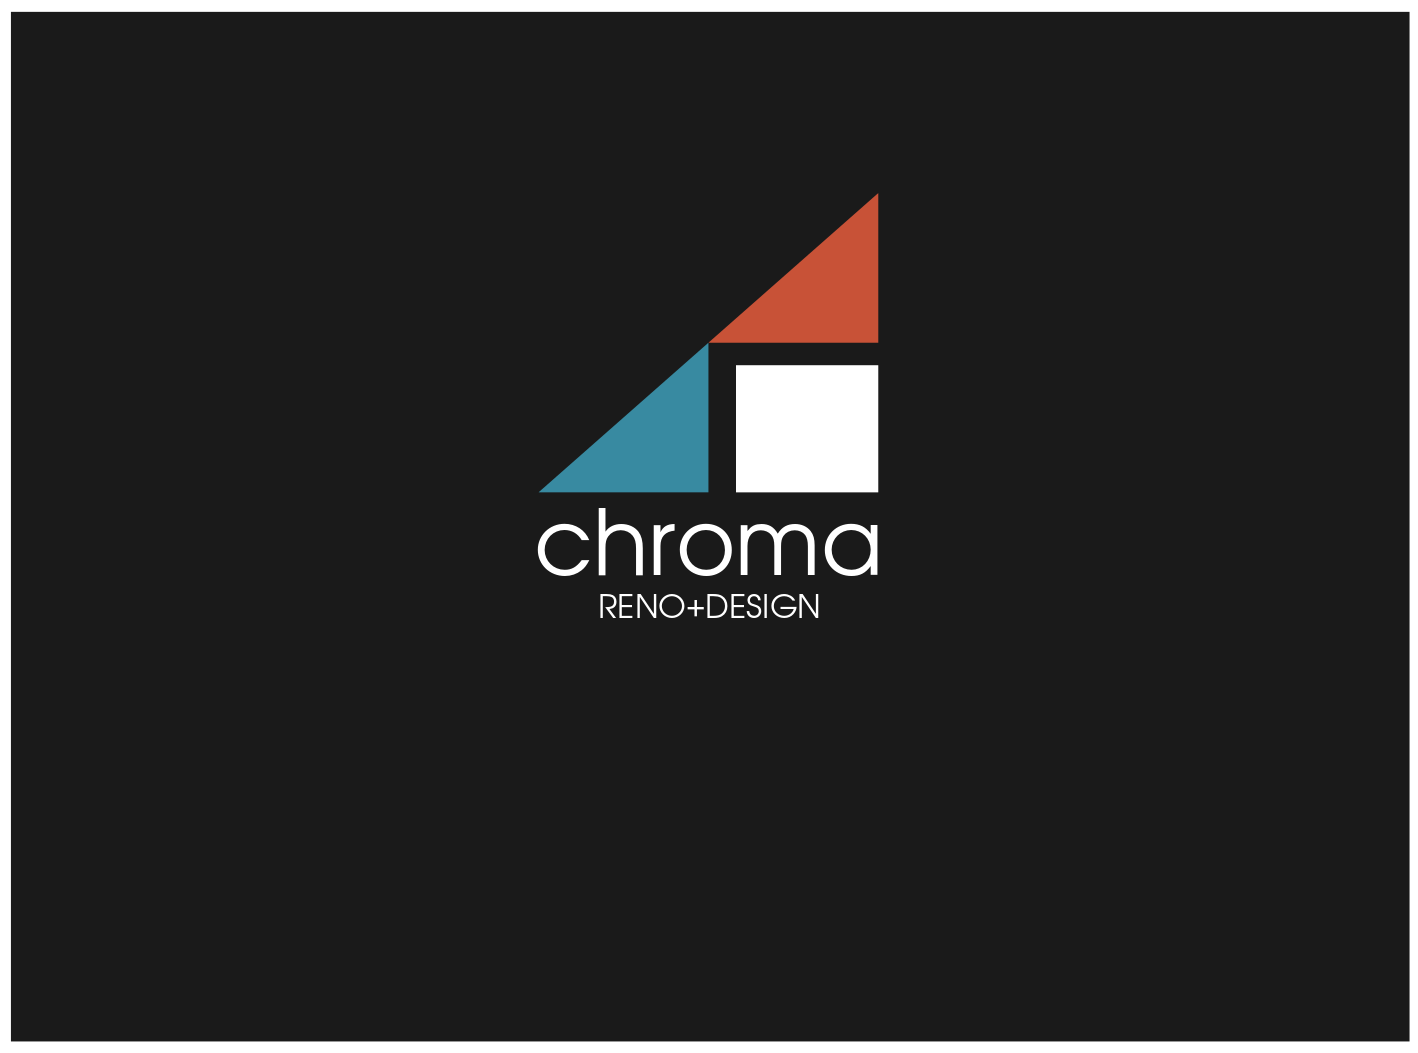 Logo Design by JaroslavProcka - Entry No. 210 in the Logo Design Contest Inspiring Logo Design for Chroma Reno+Design.